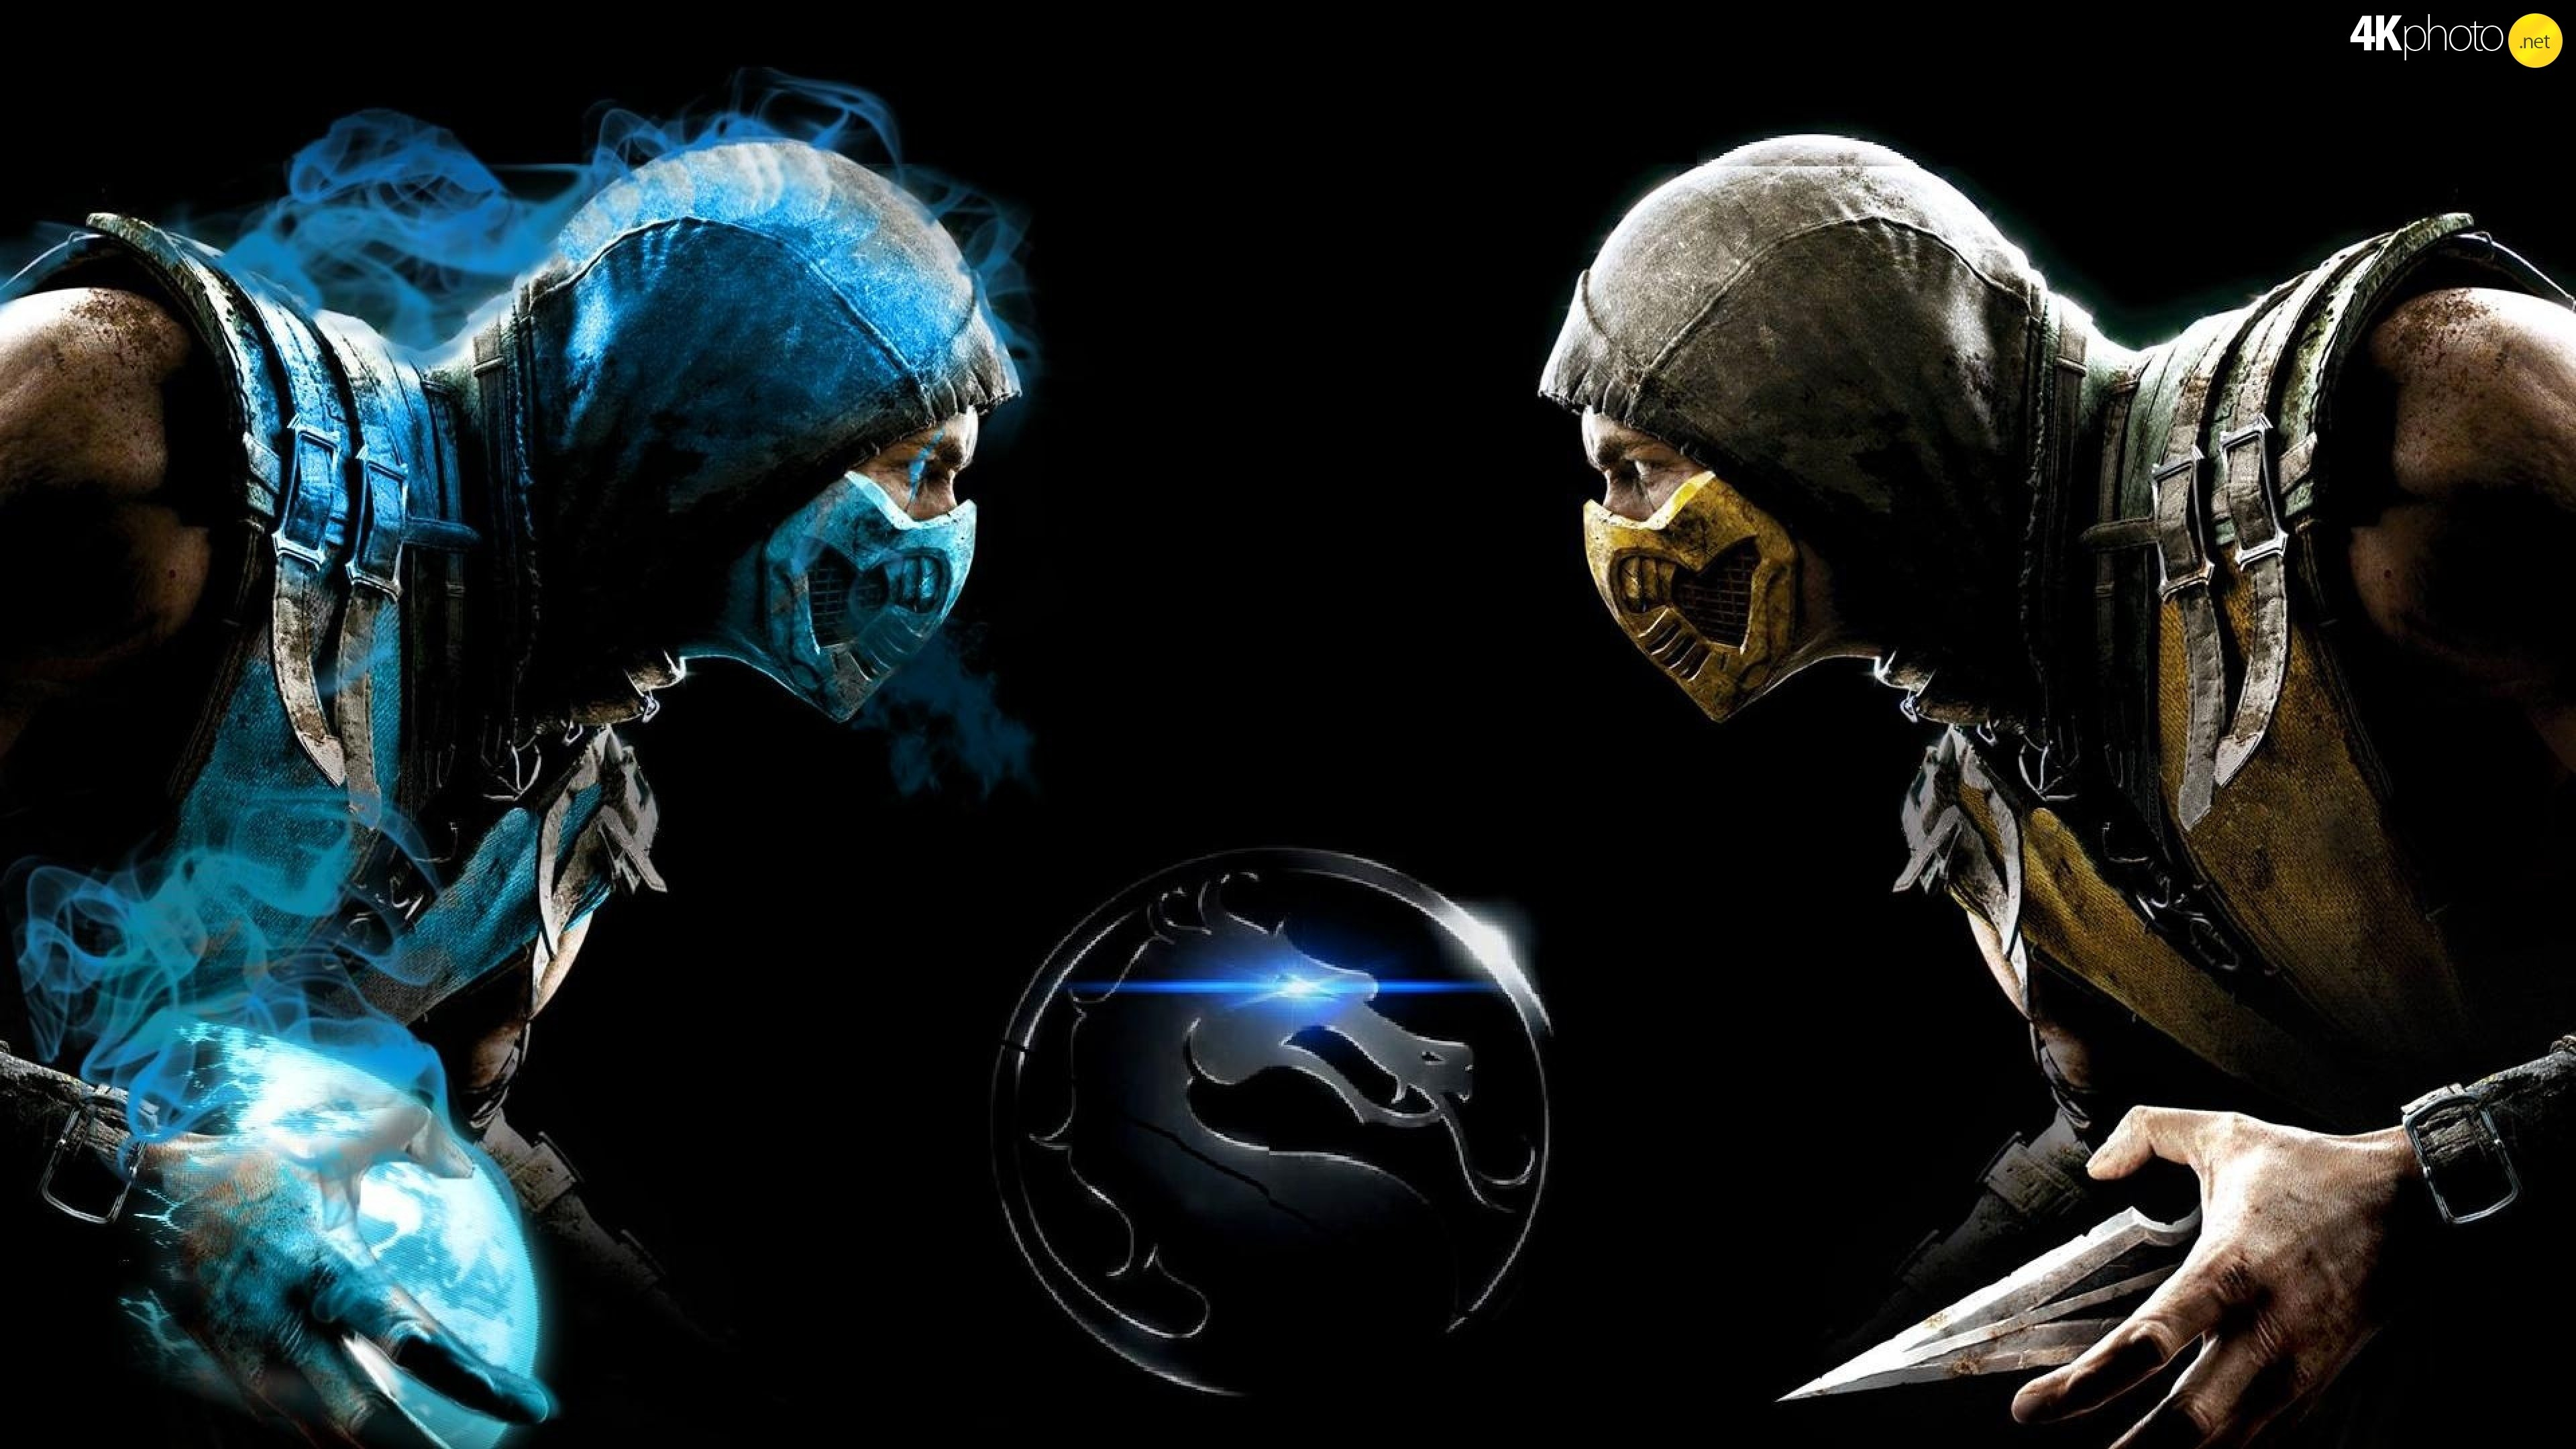 71 Mortal Kombat X Scorpion